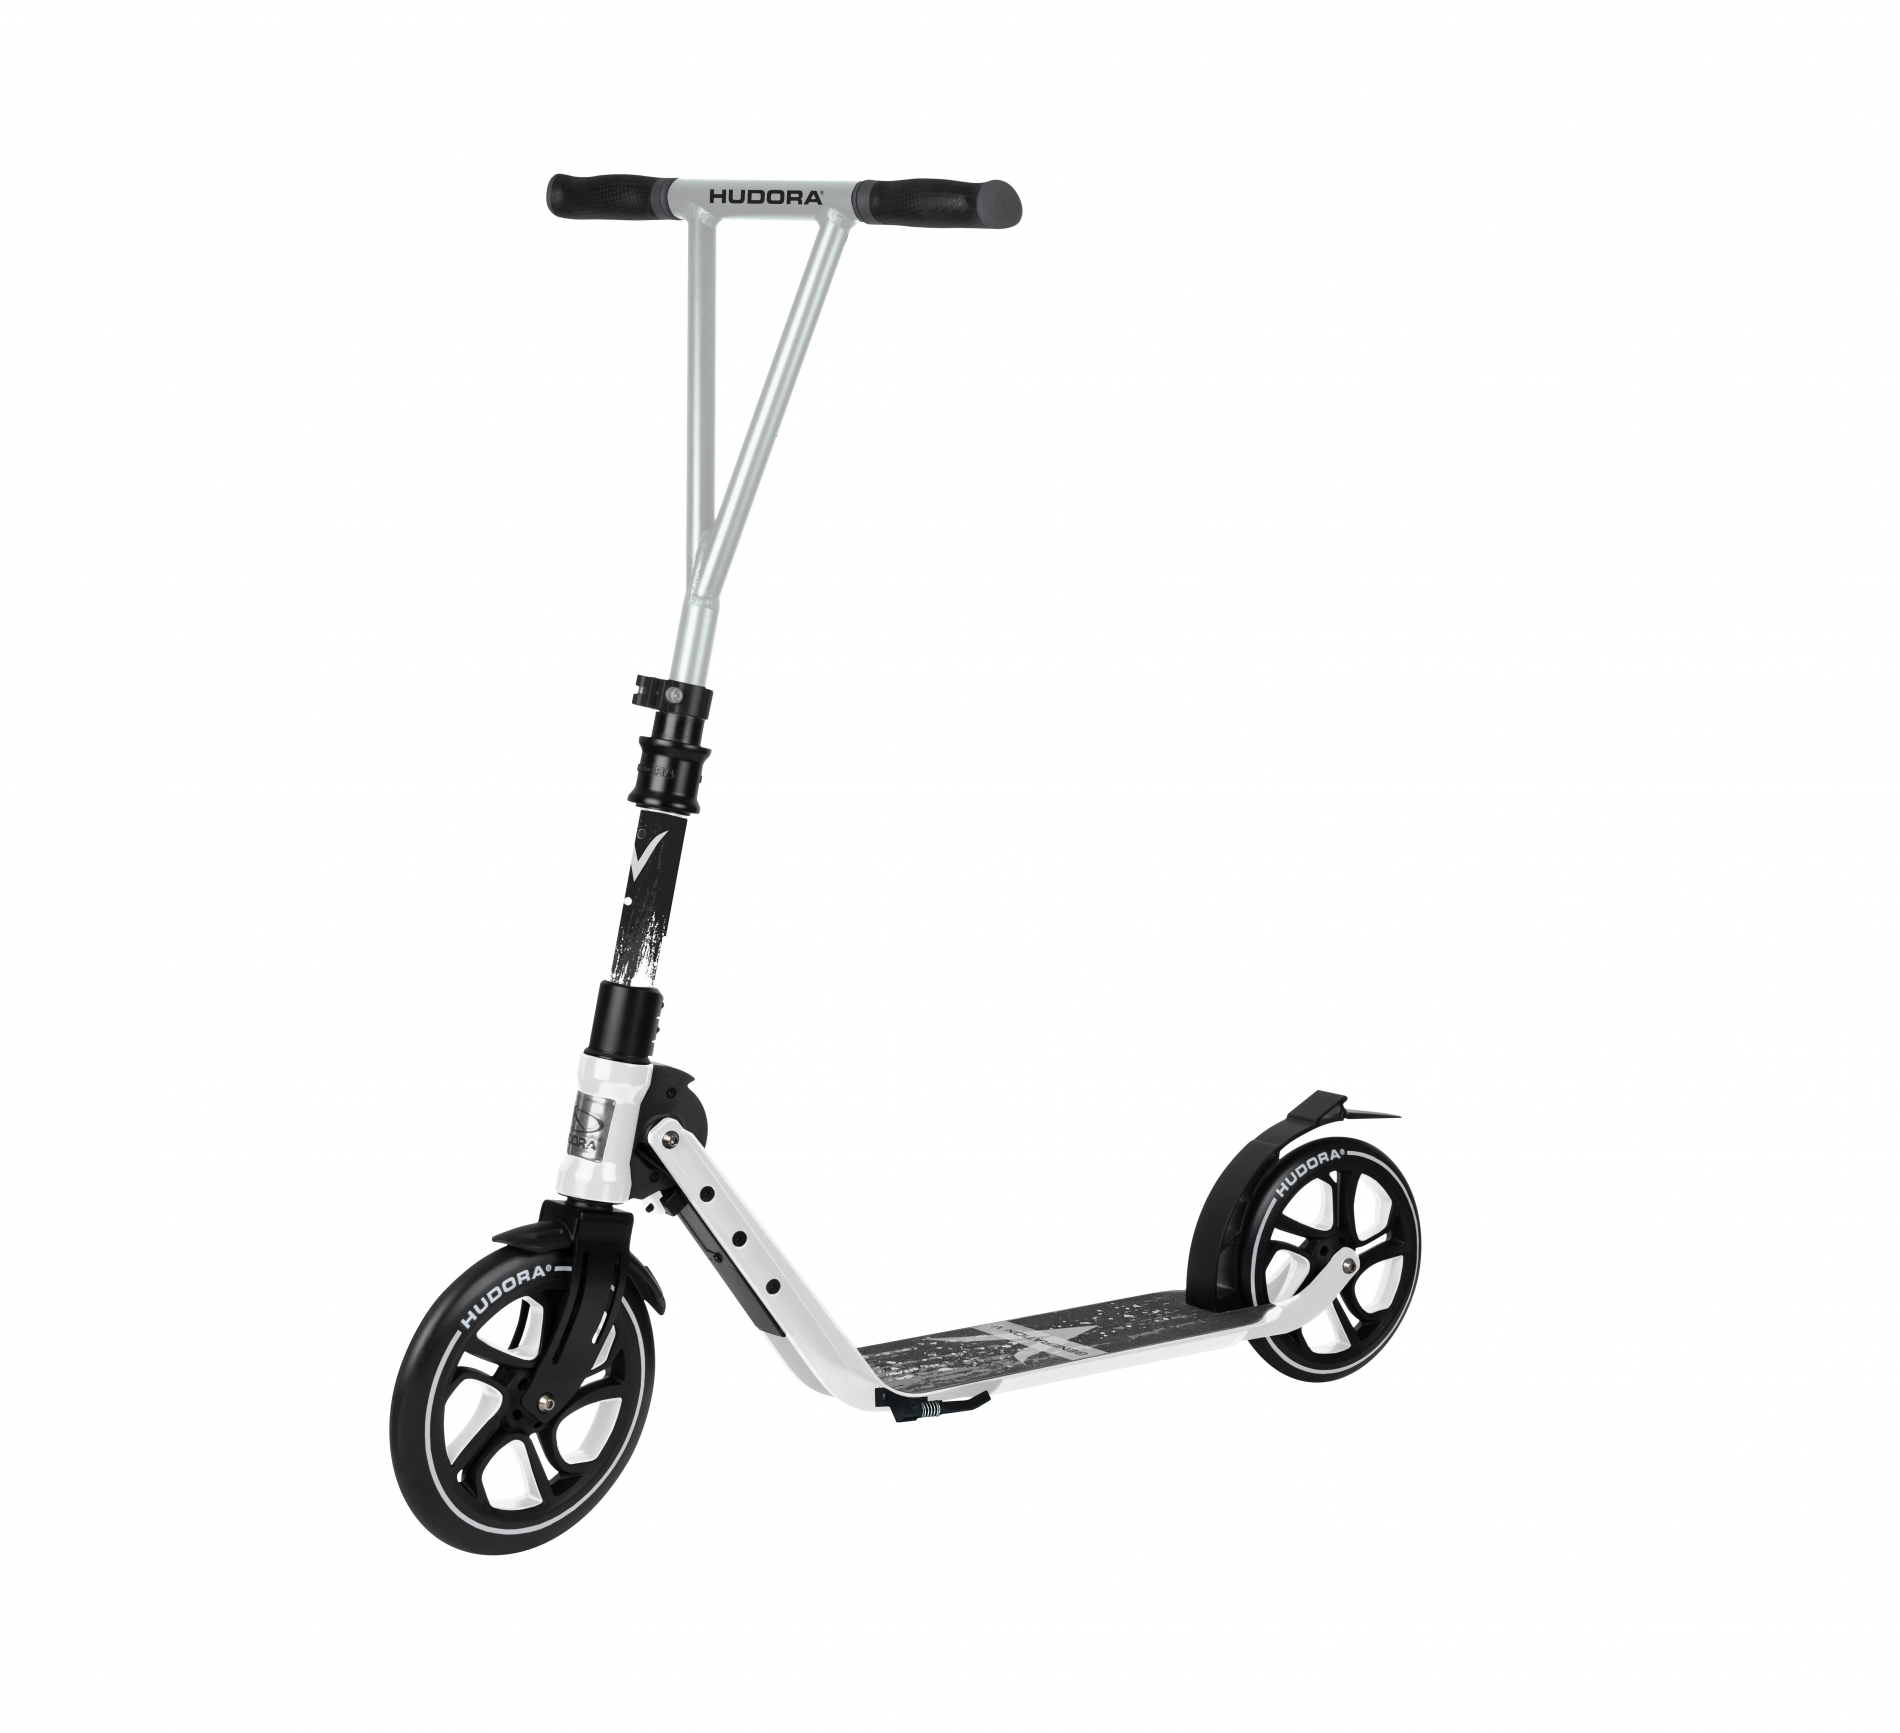 Самокат HUDORA Big Wheel Generation V 230 White (14116)